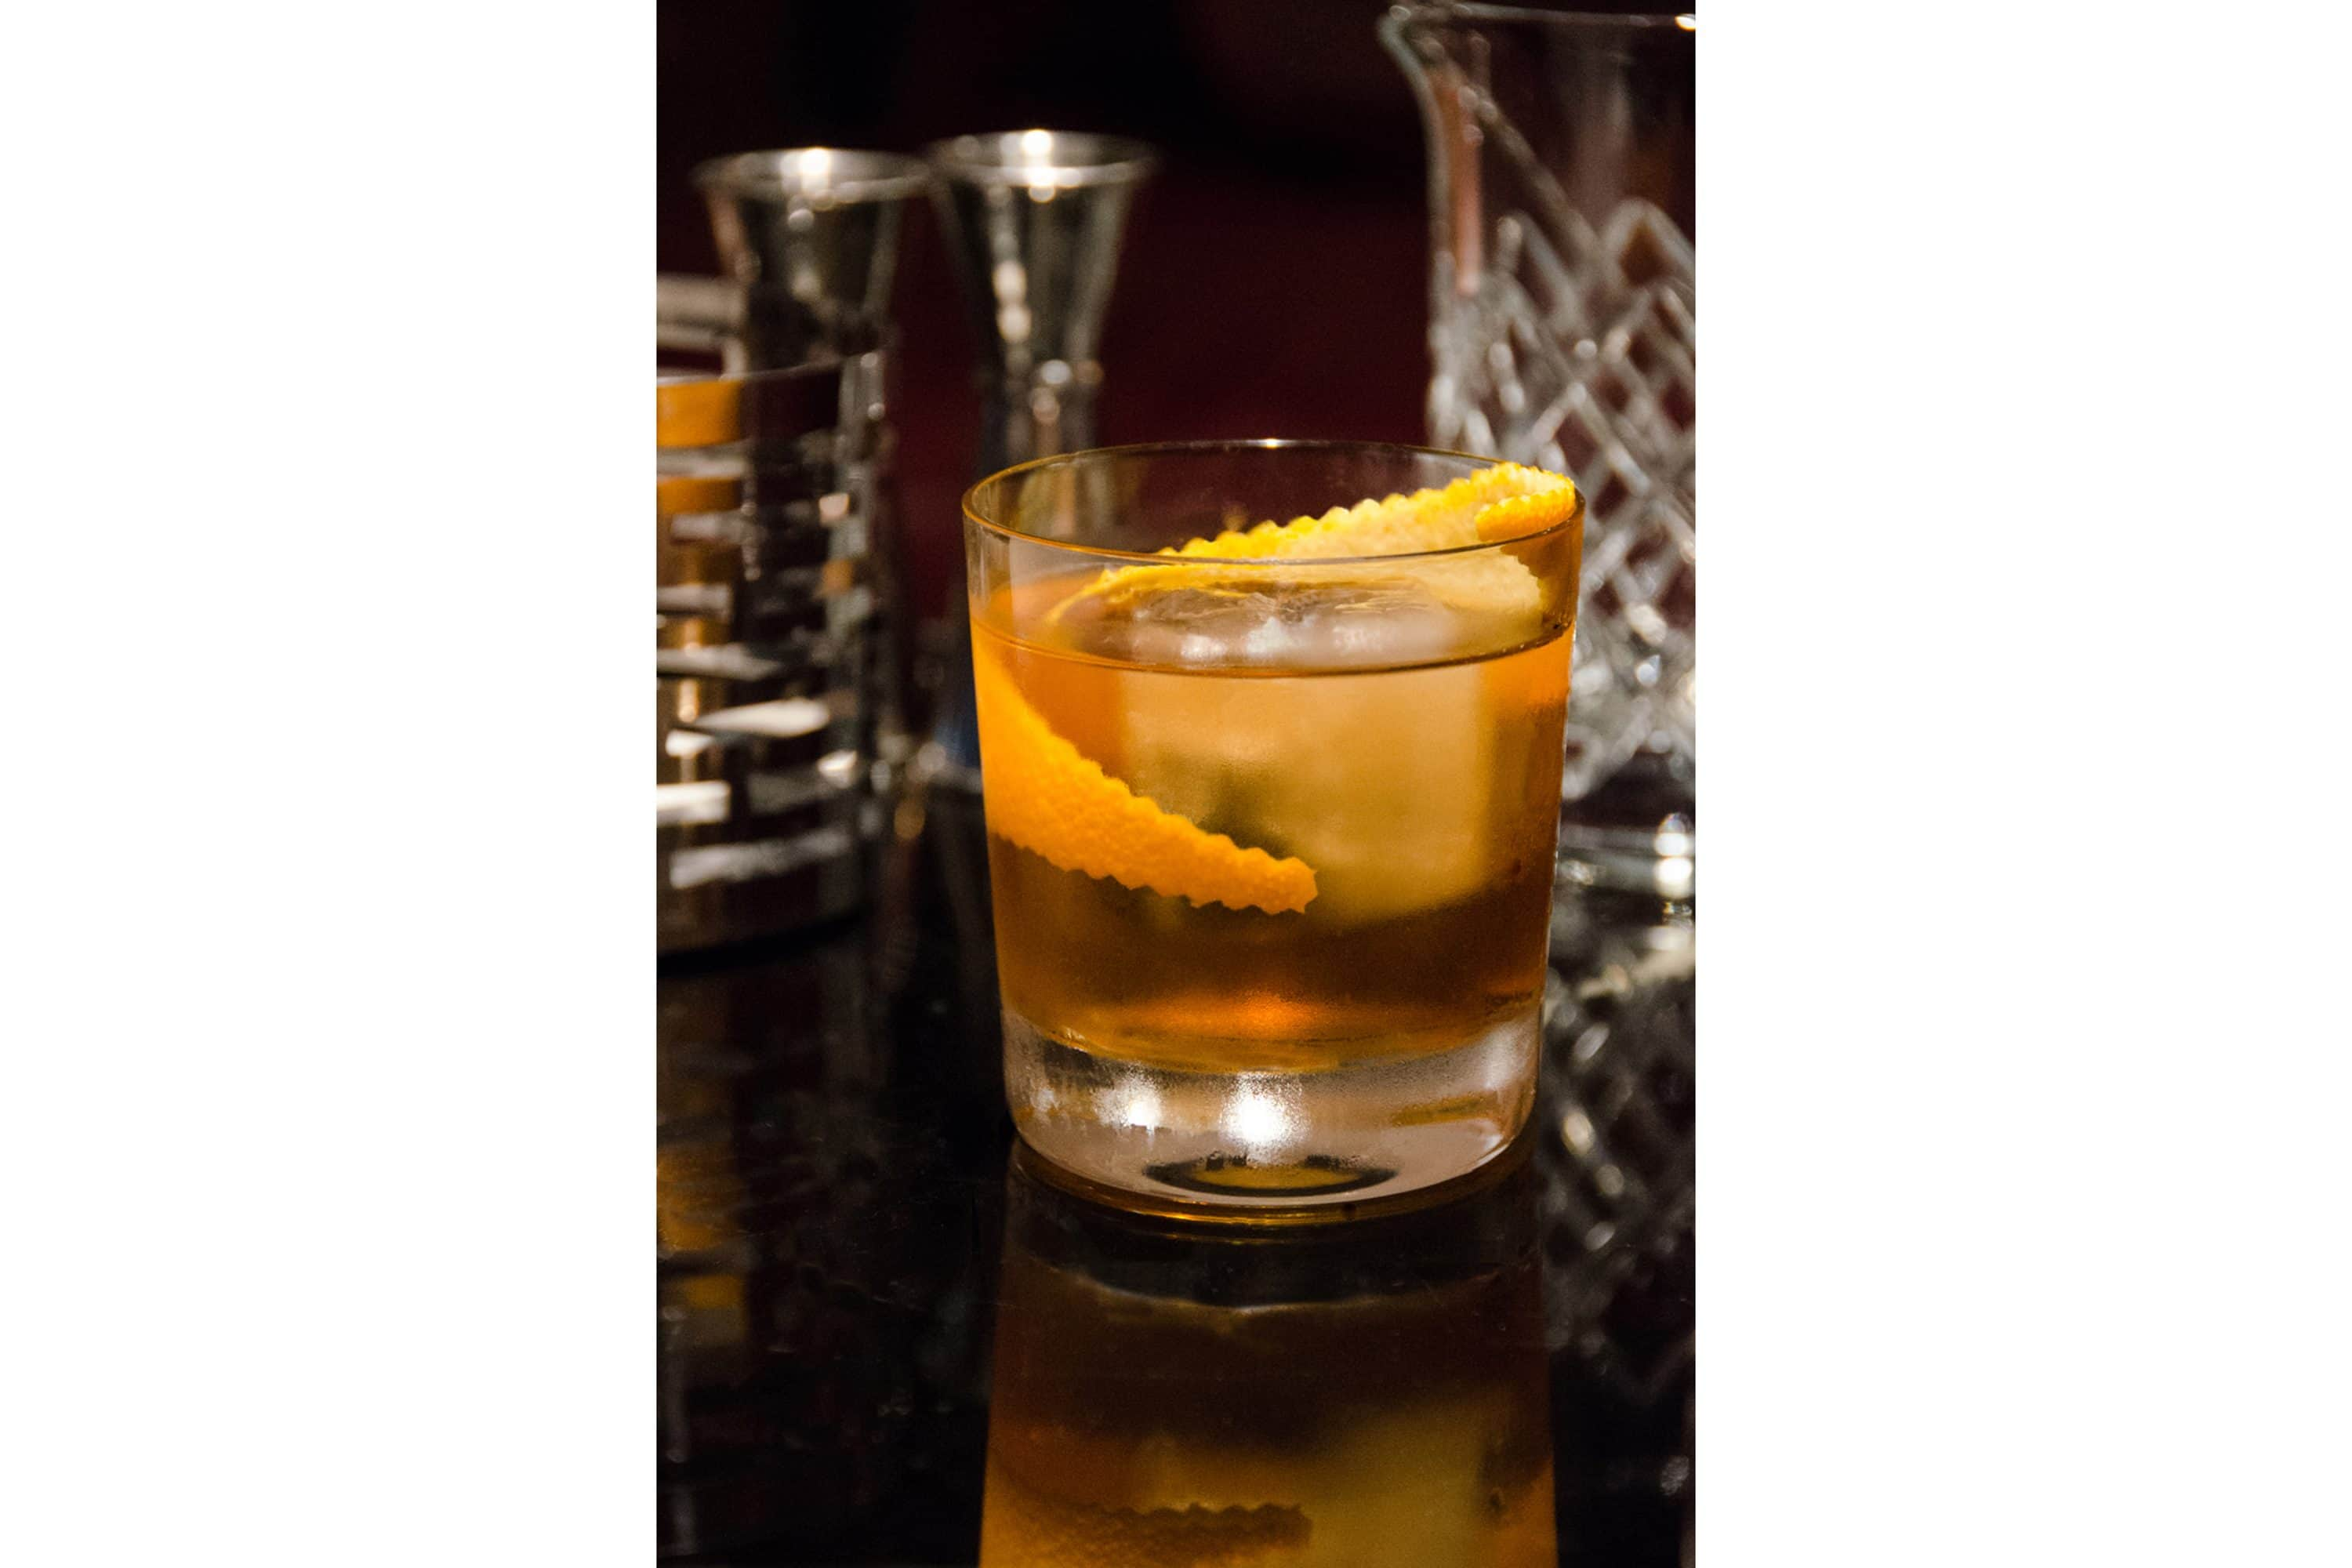 Negroni cocktail with a slice of orange peel